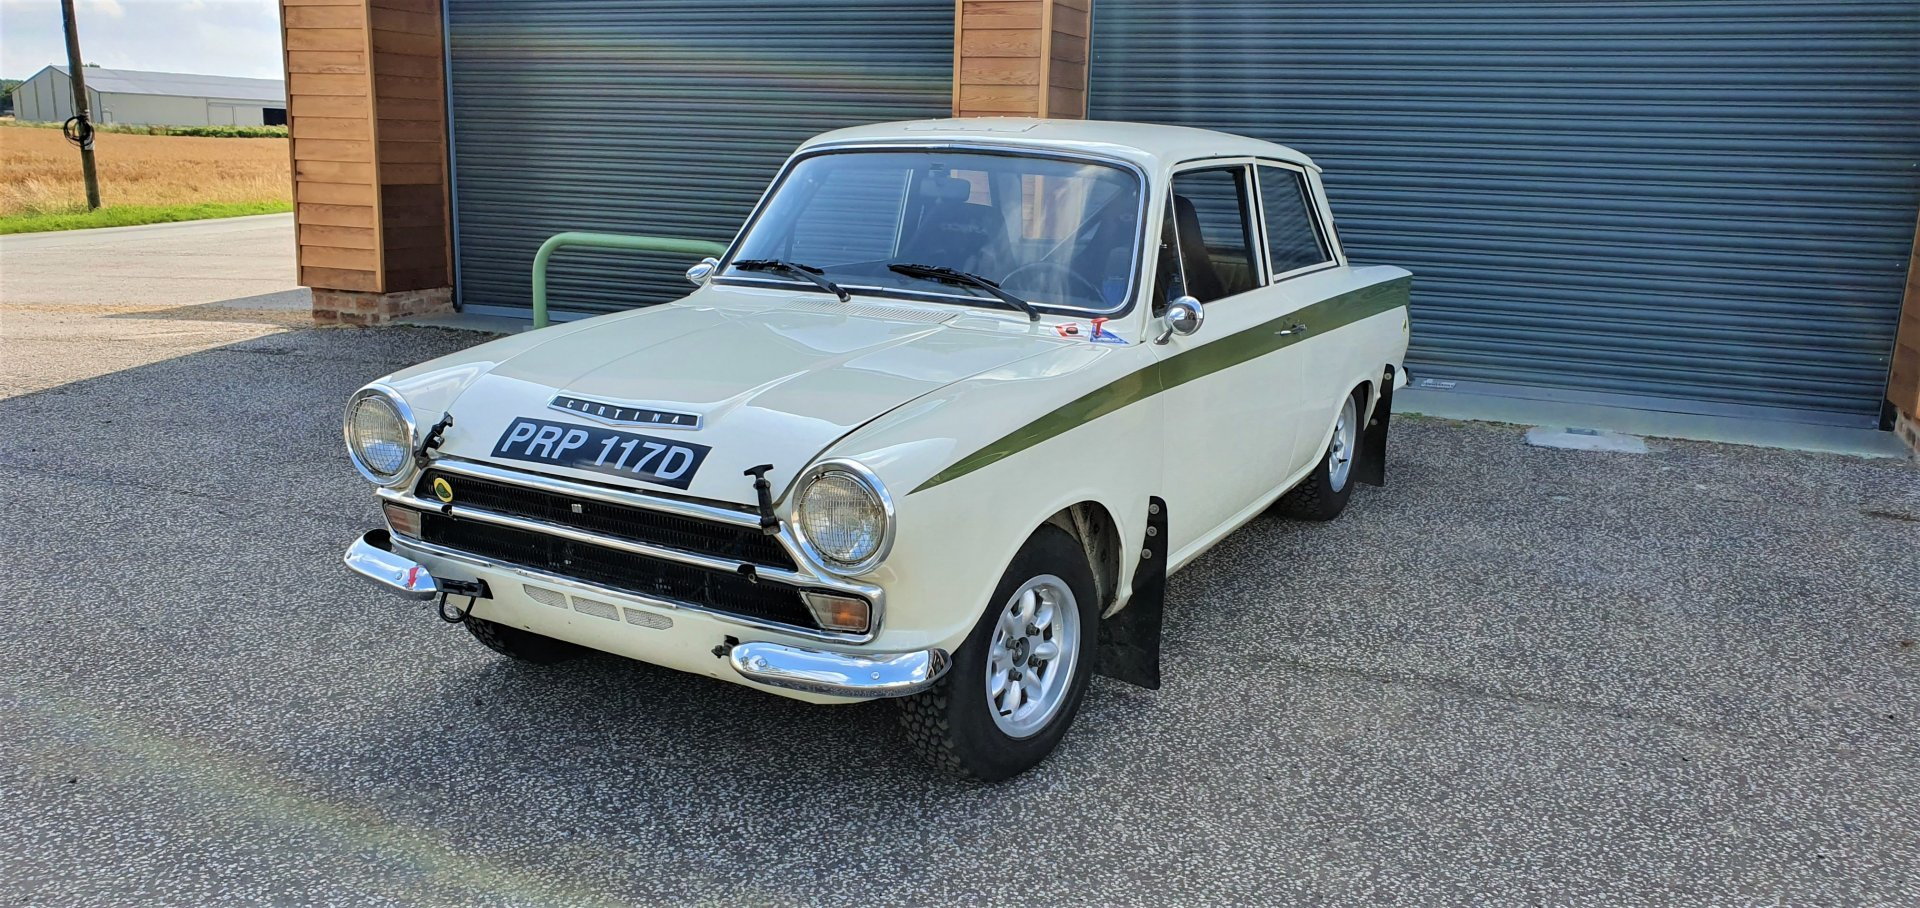 1966 Mk1 Lotus Cortina, MSA Logbook, Endurance Spec Rally Car For Sale (picture 1 of 6)